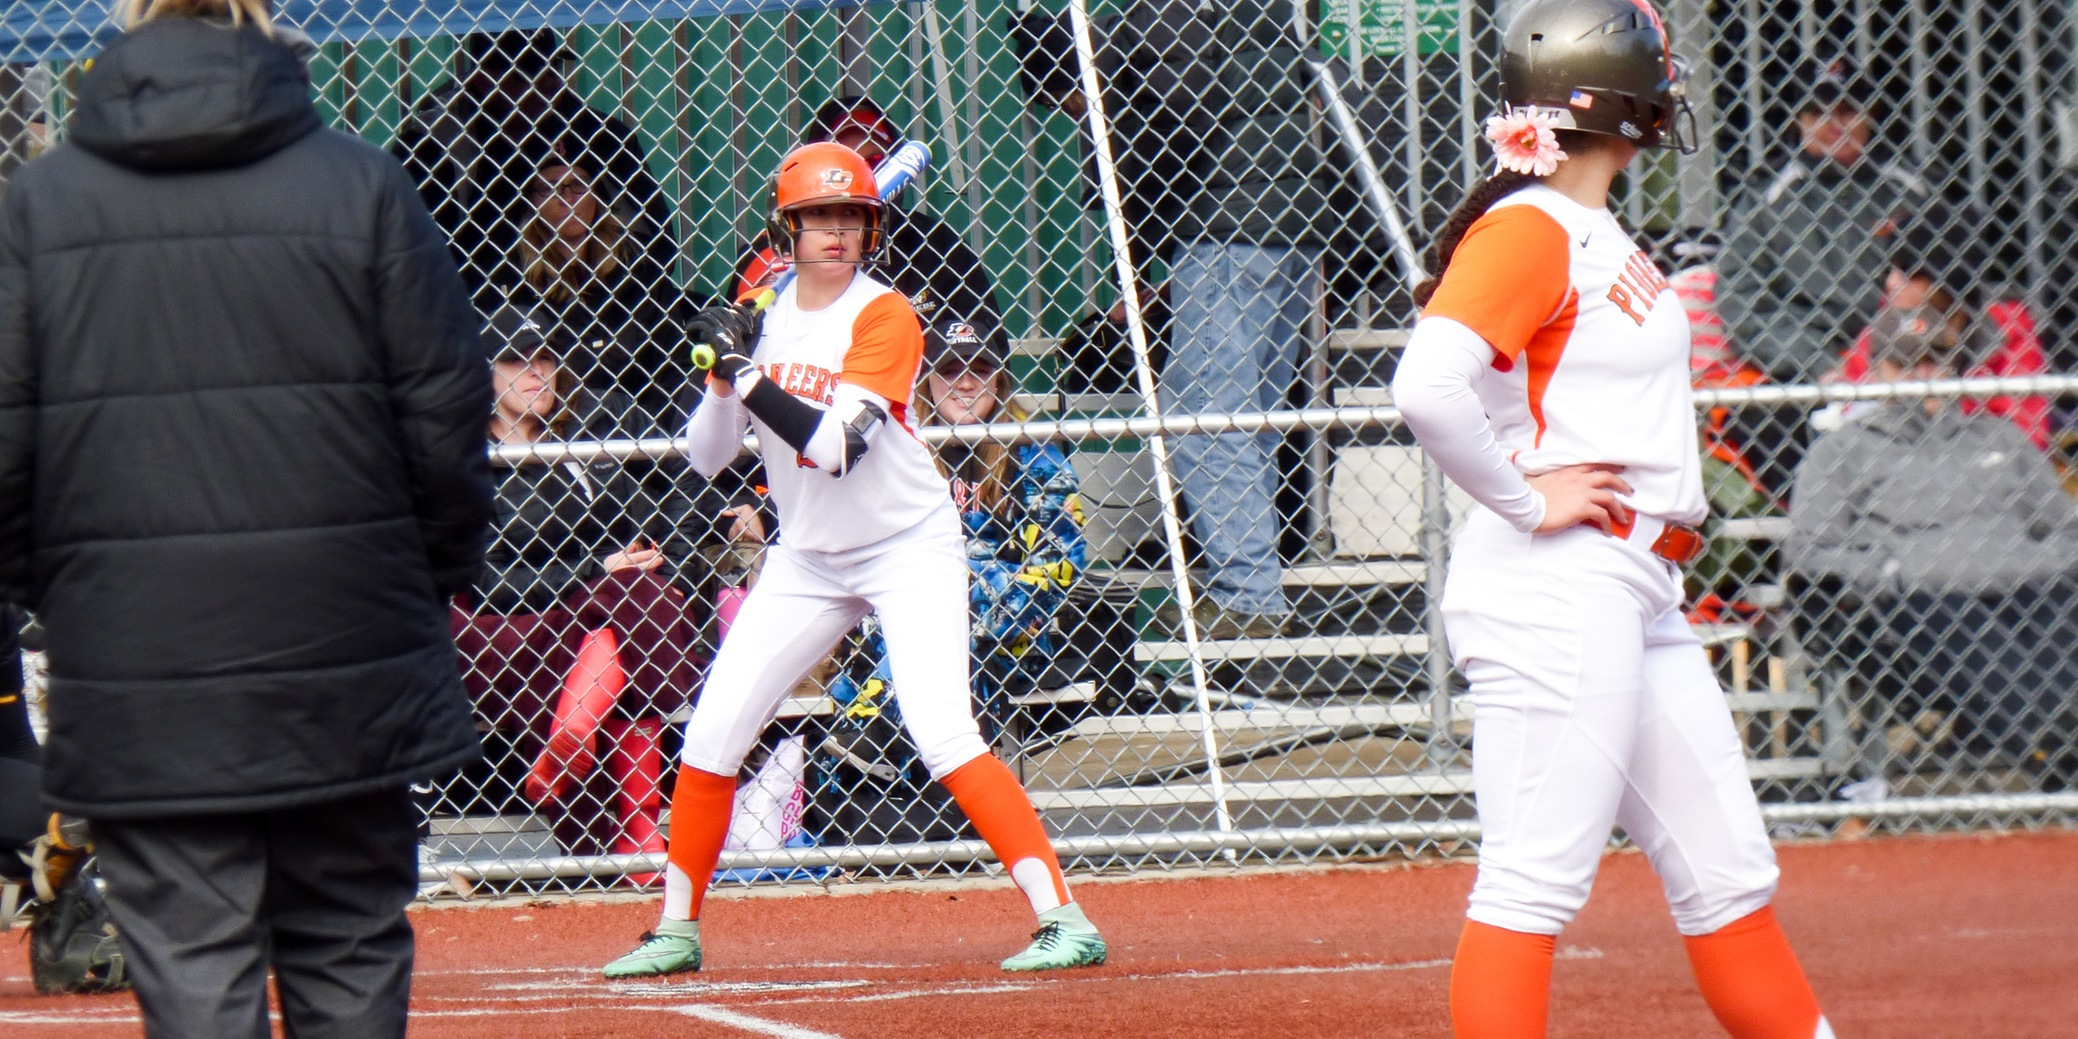 Lewis & Clark strands 16 runners, including game-tying runs in pair of defeats